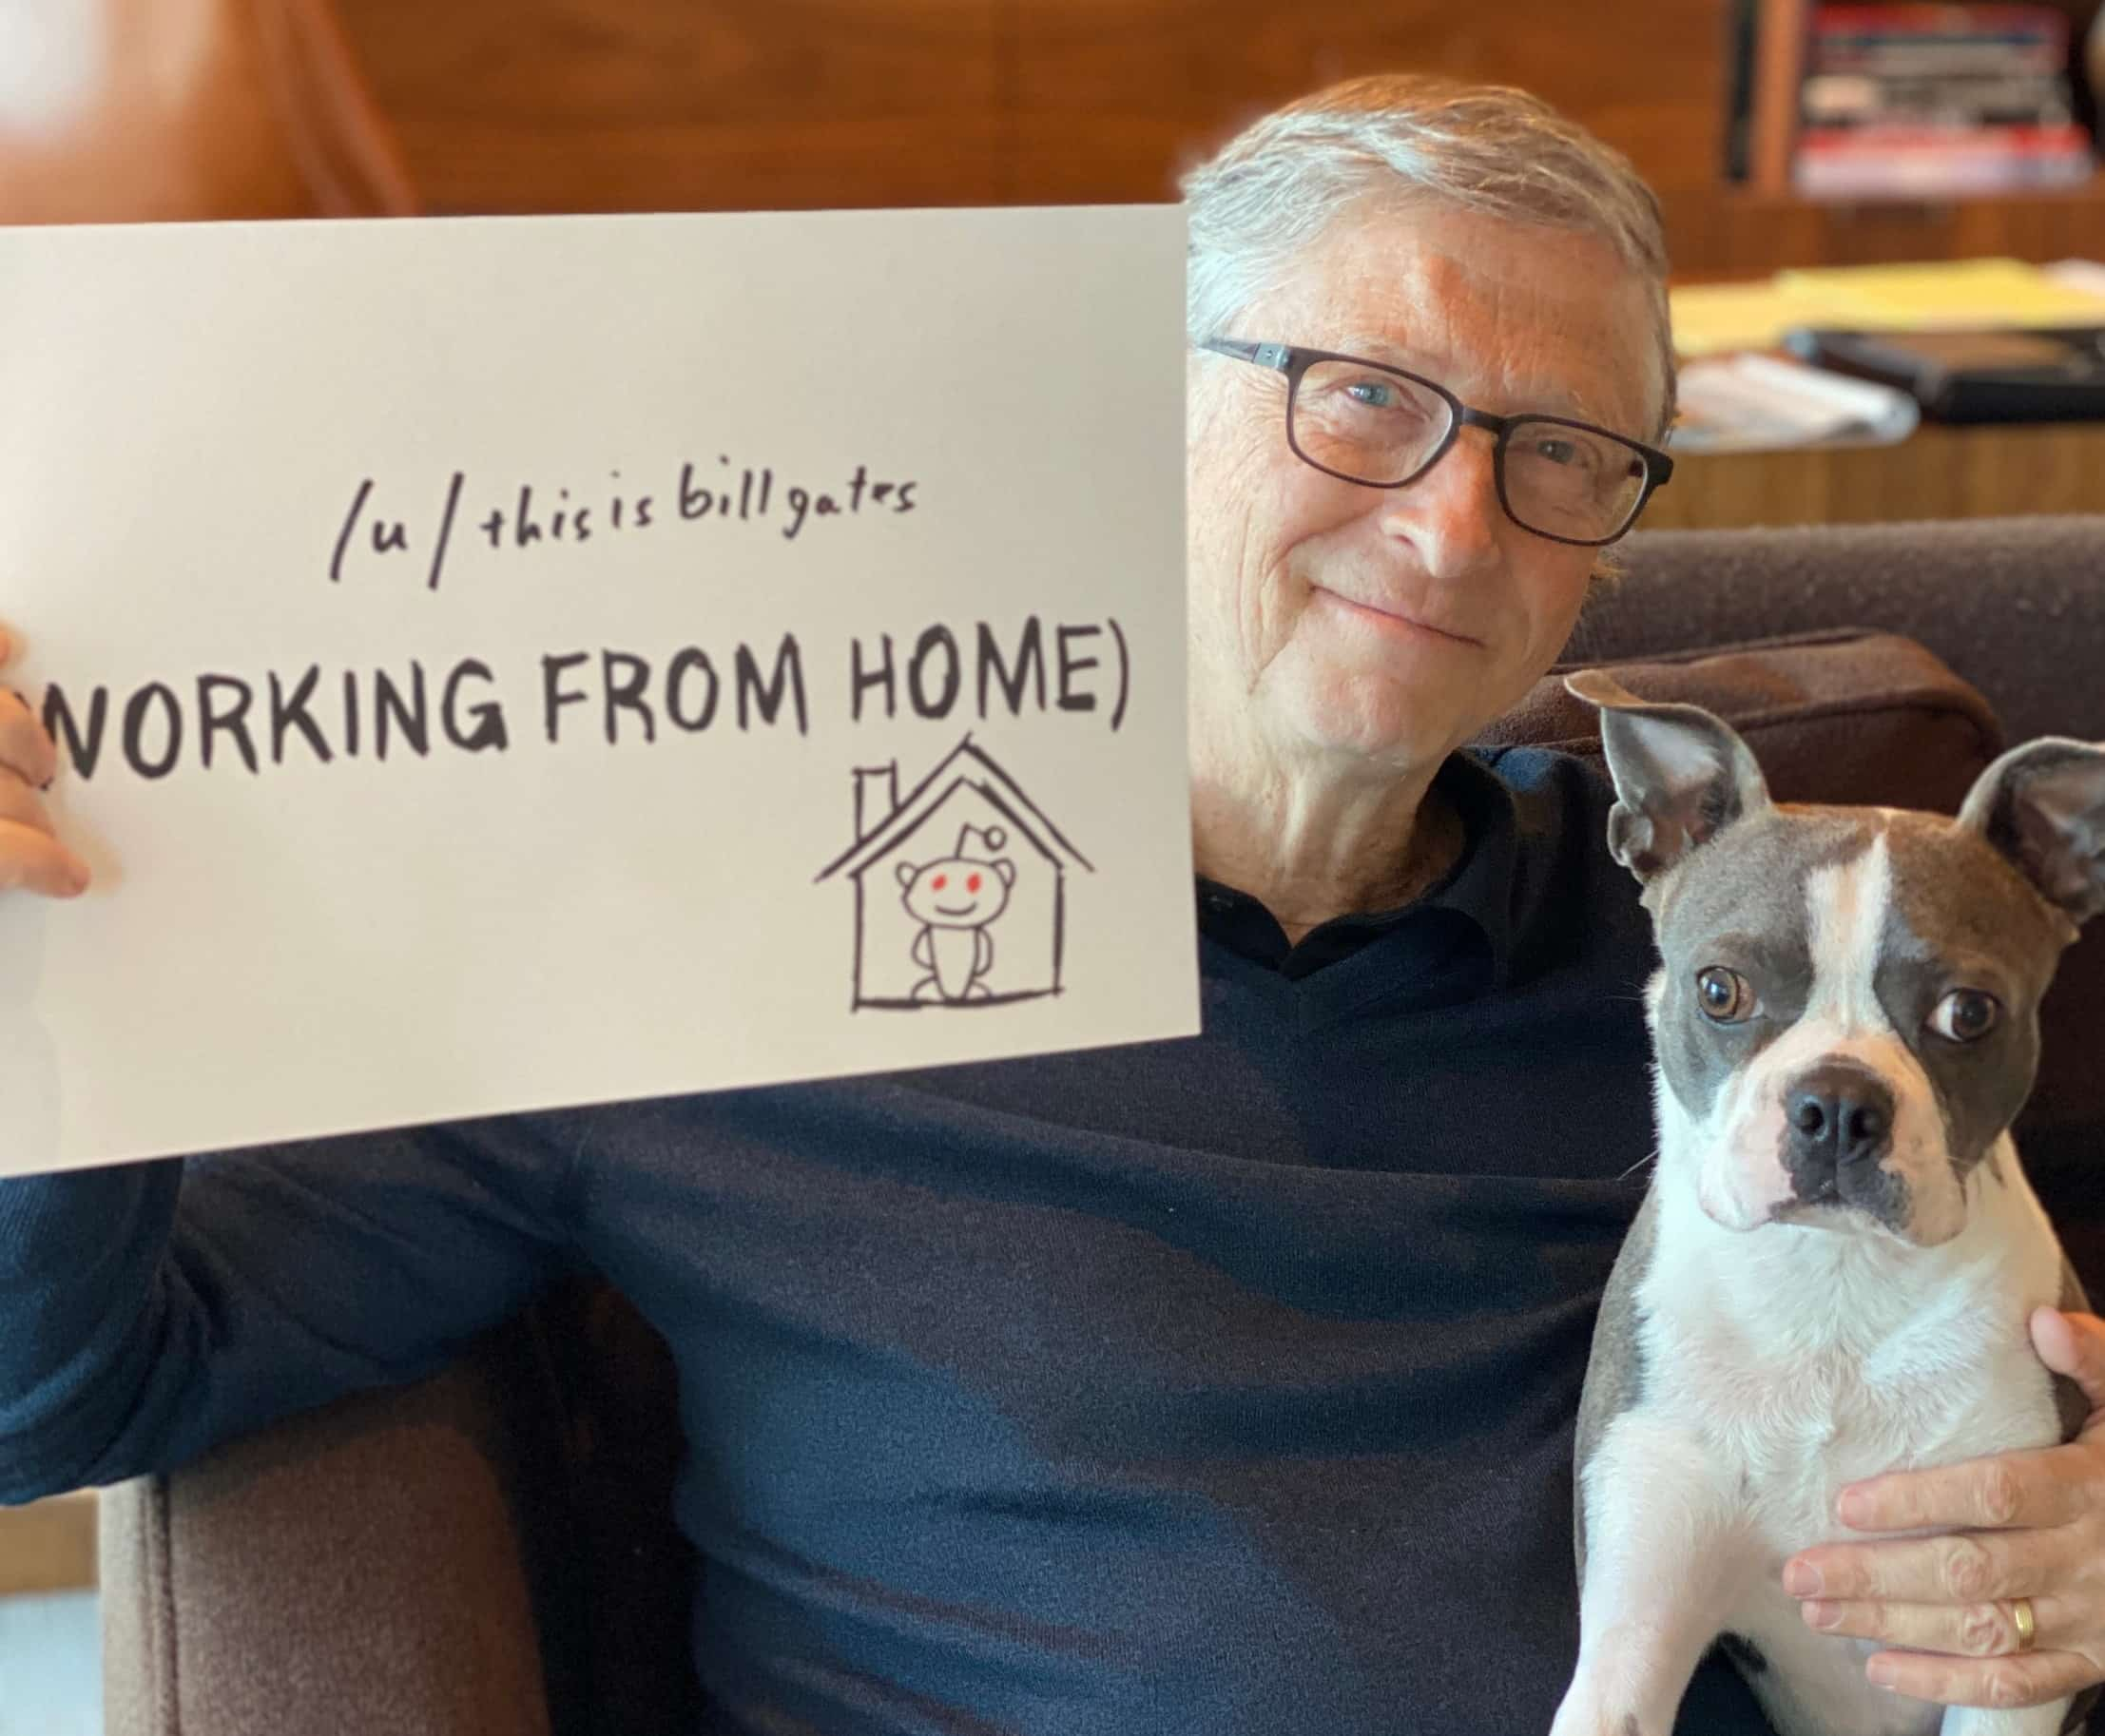 Bill Gates working at home